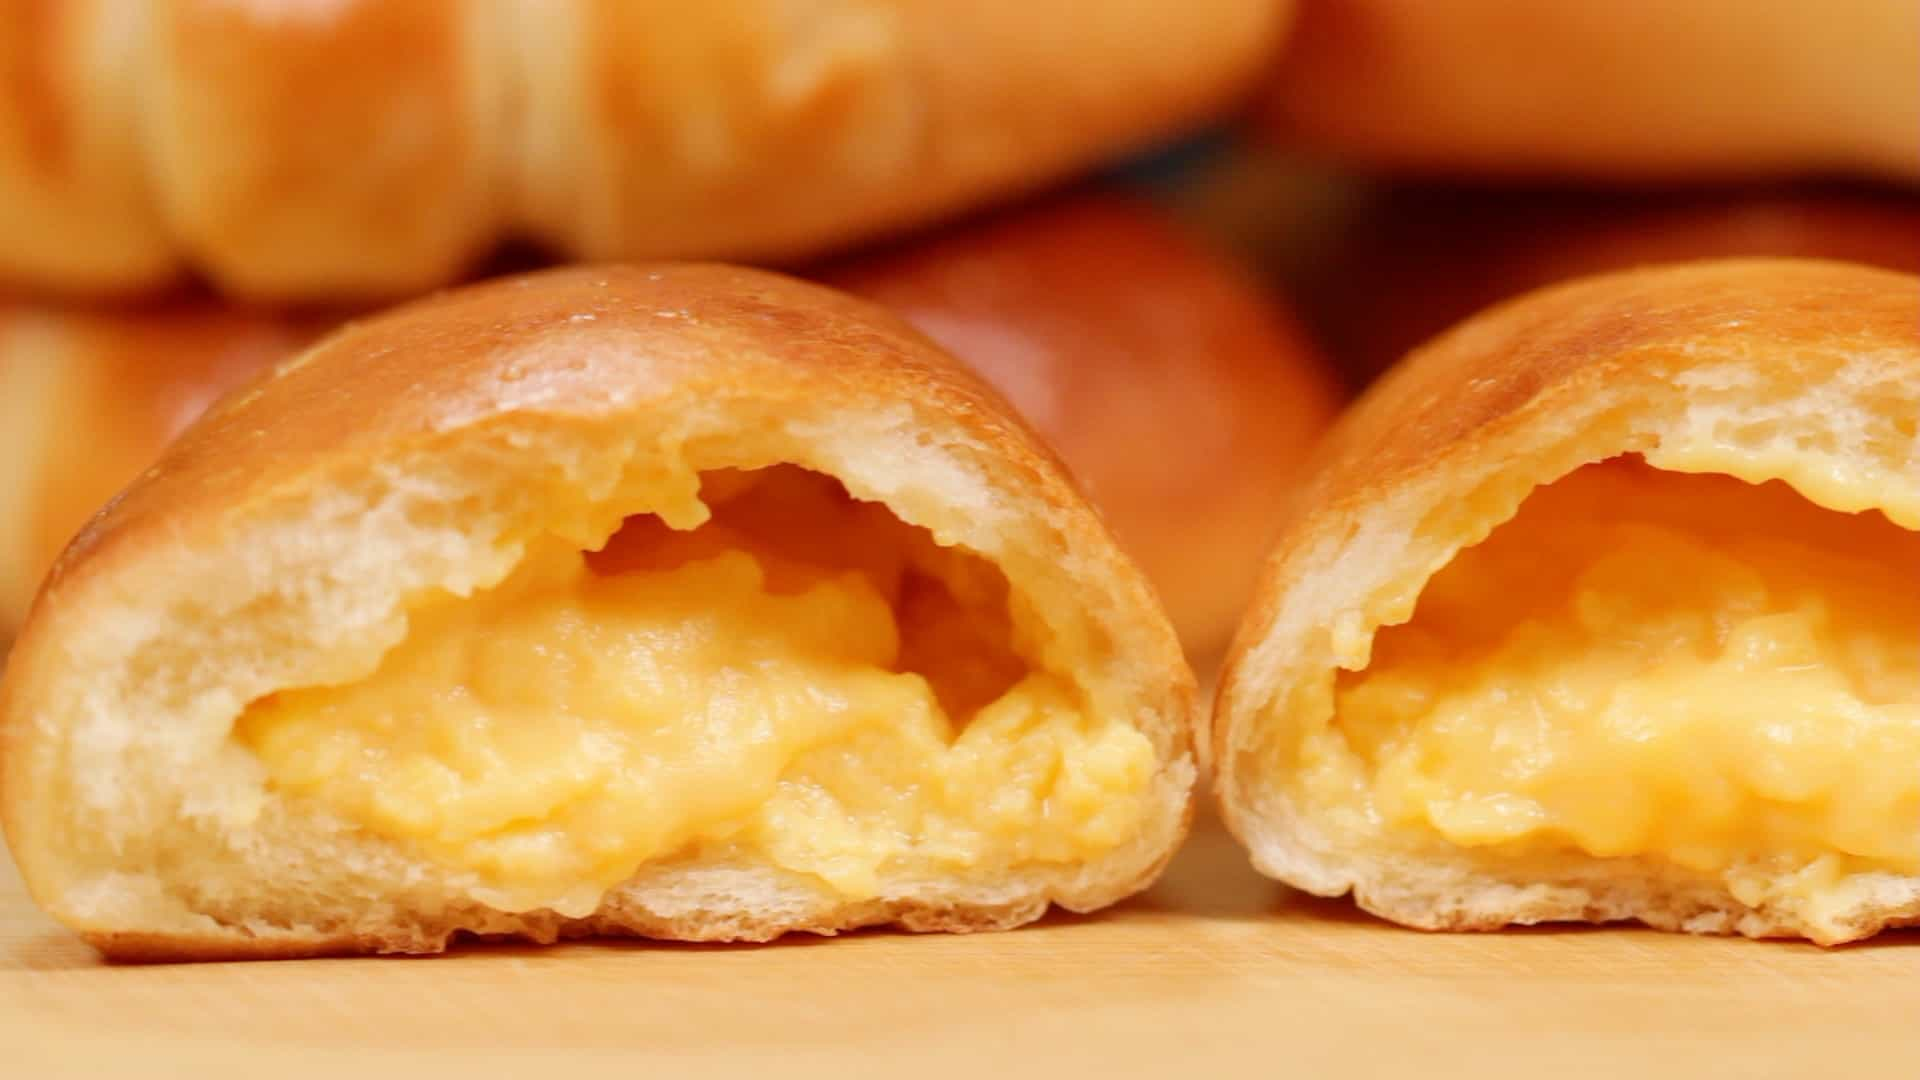 The Best Cream Pan With Custard Filling Recipe Japanese Sweet Buns Filled With Exquisite Pastry Cream Cooking With Dog